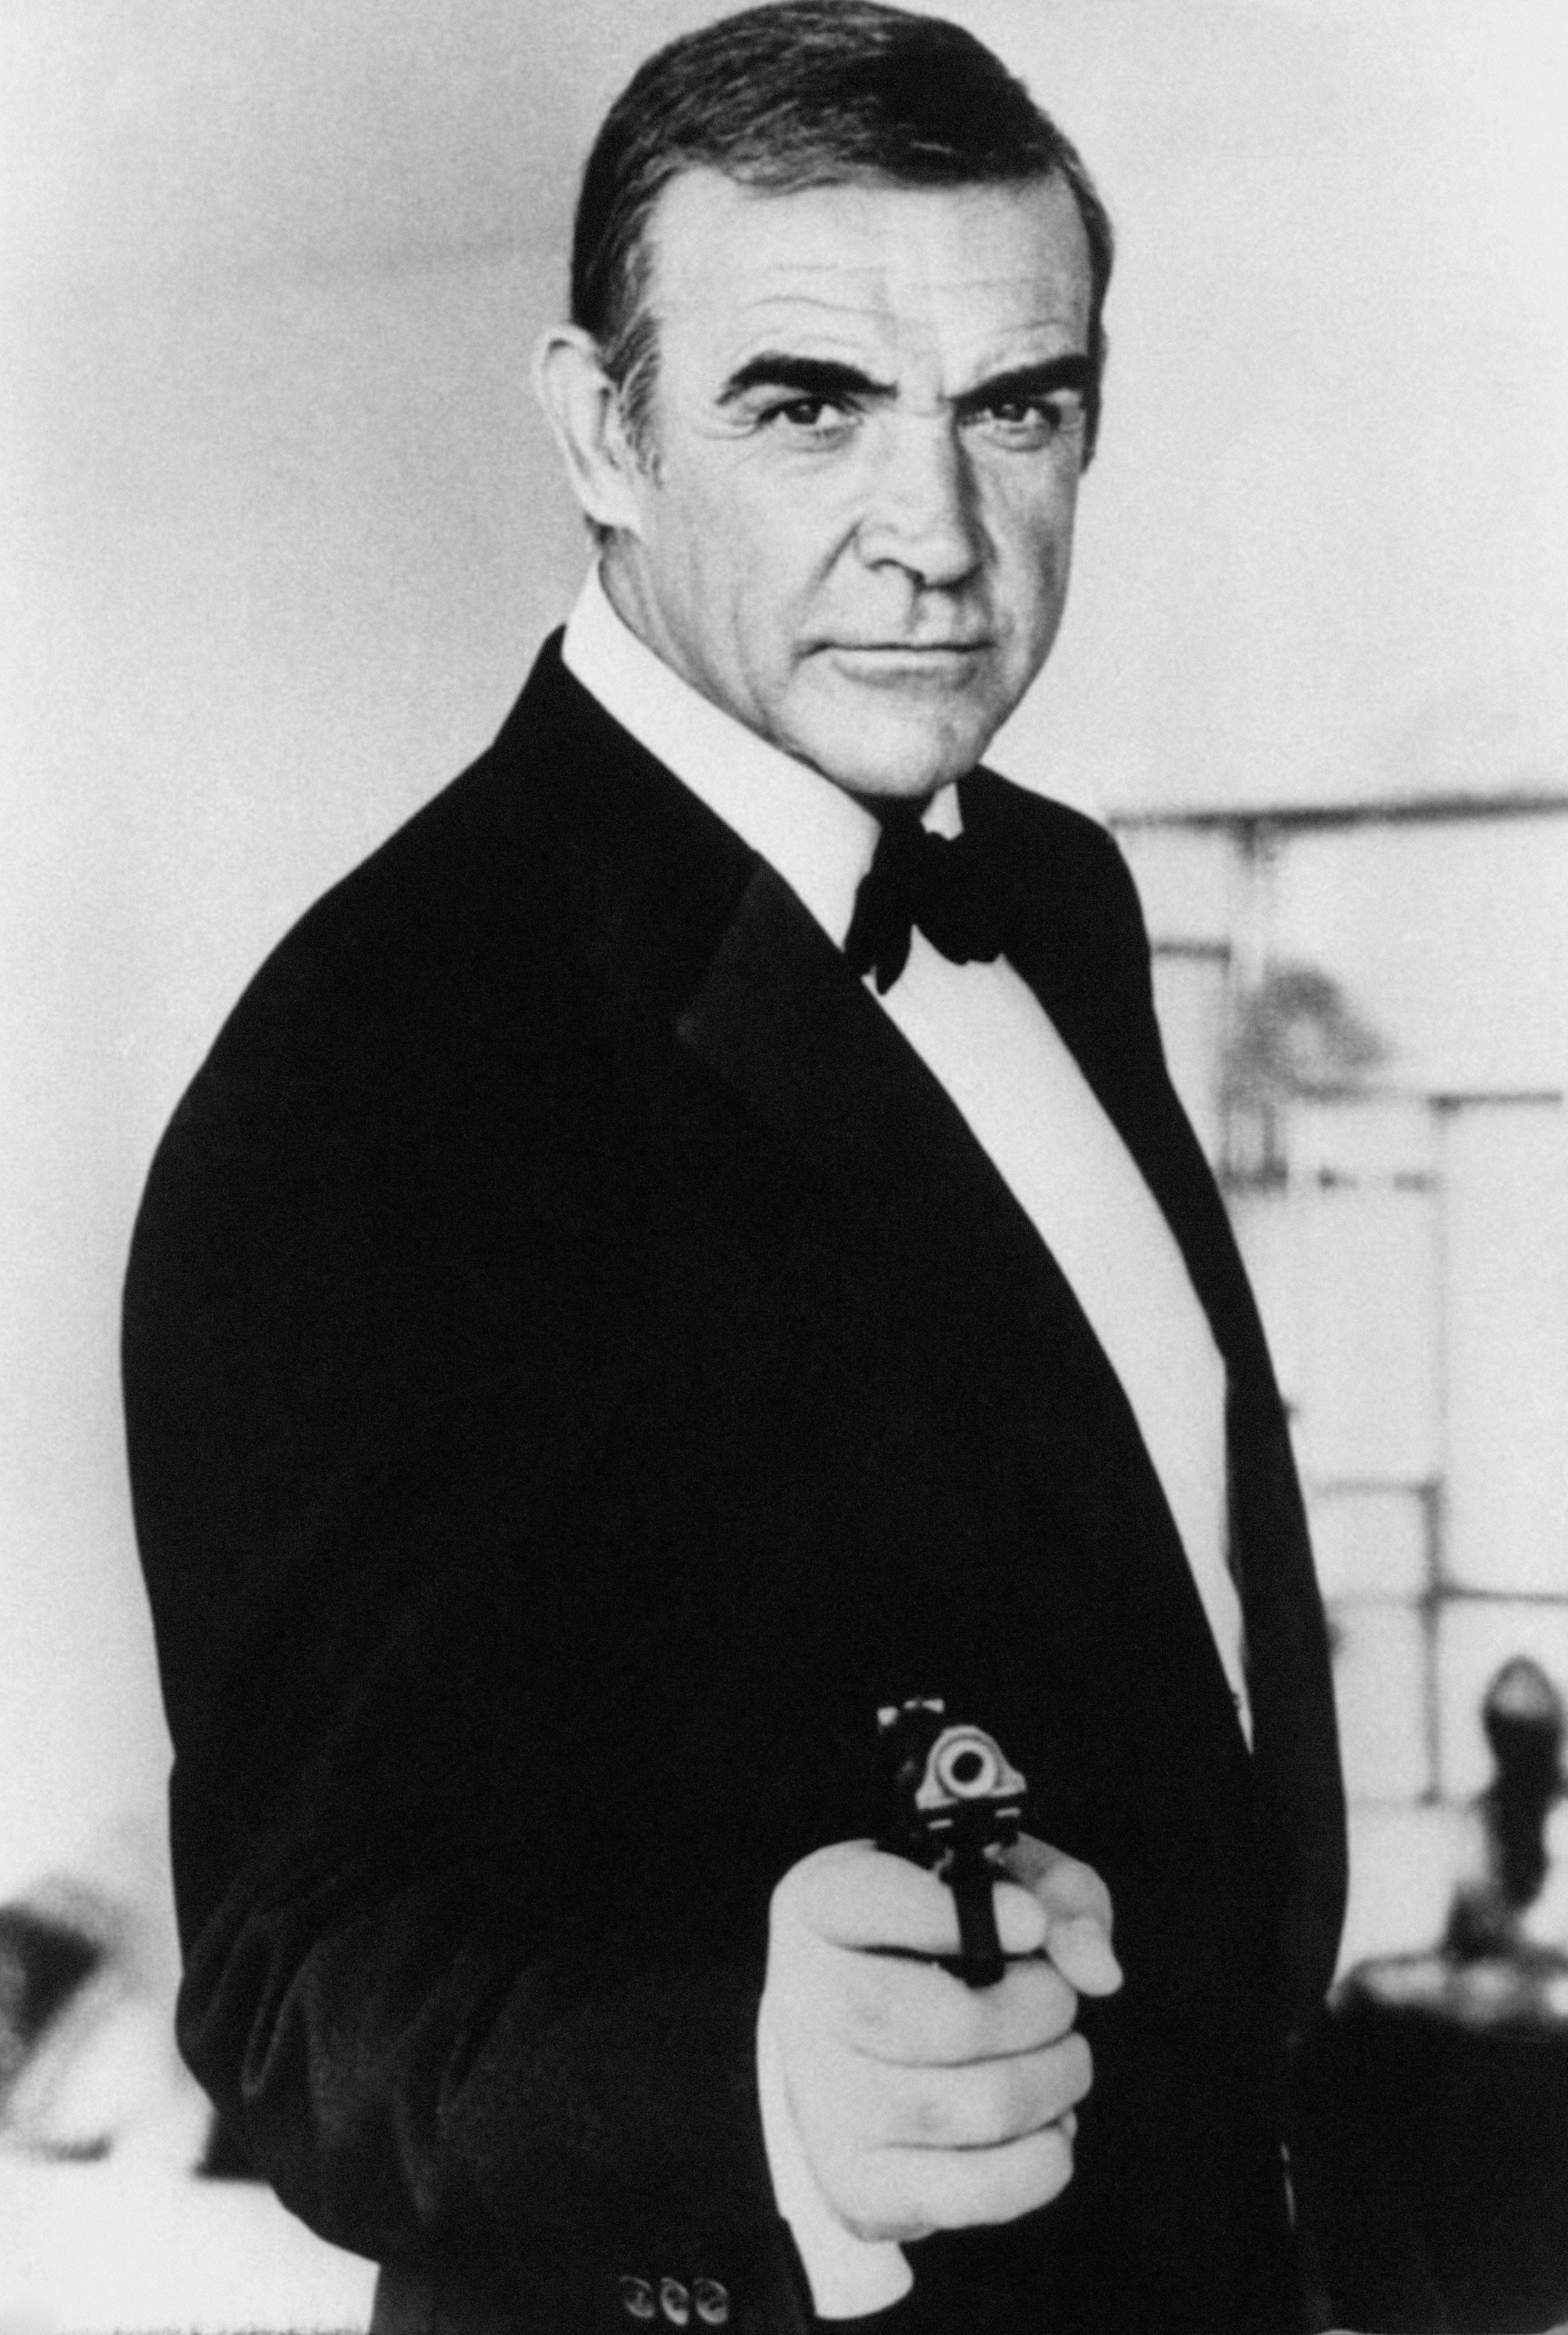 SHAKEN NOT STIRRED: James Bond Was A Severe Alcoholic – Tell Us Something We Don't